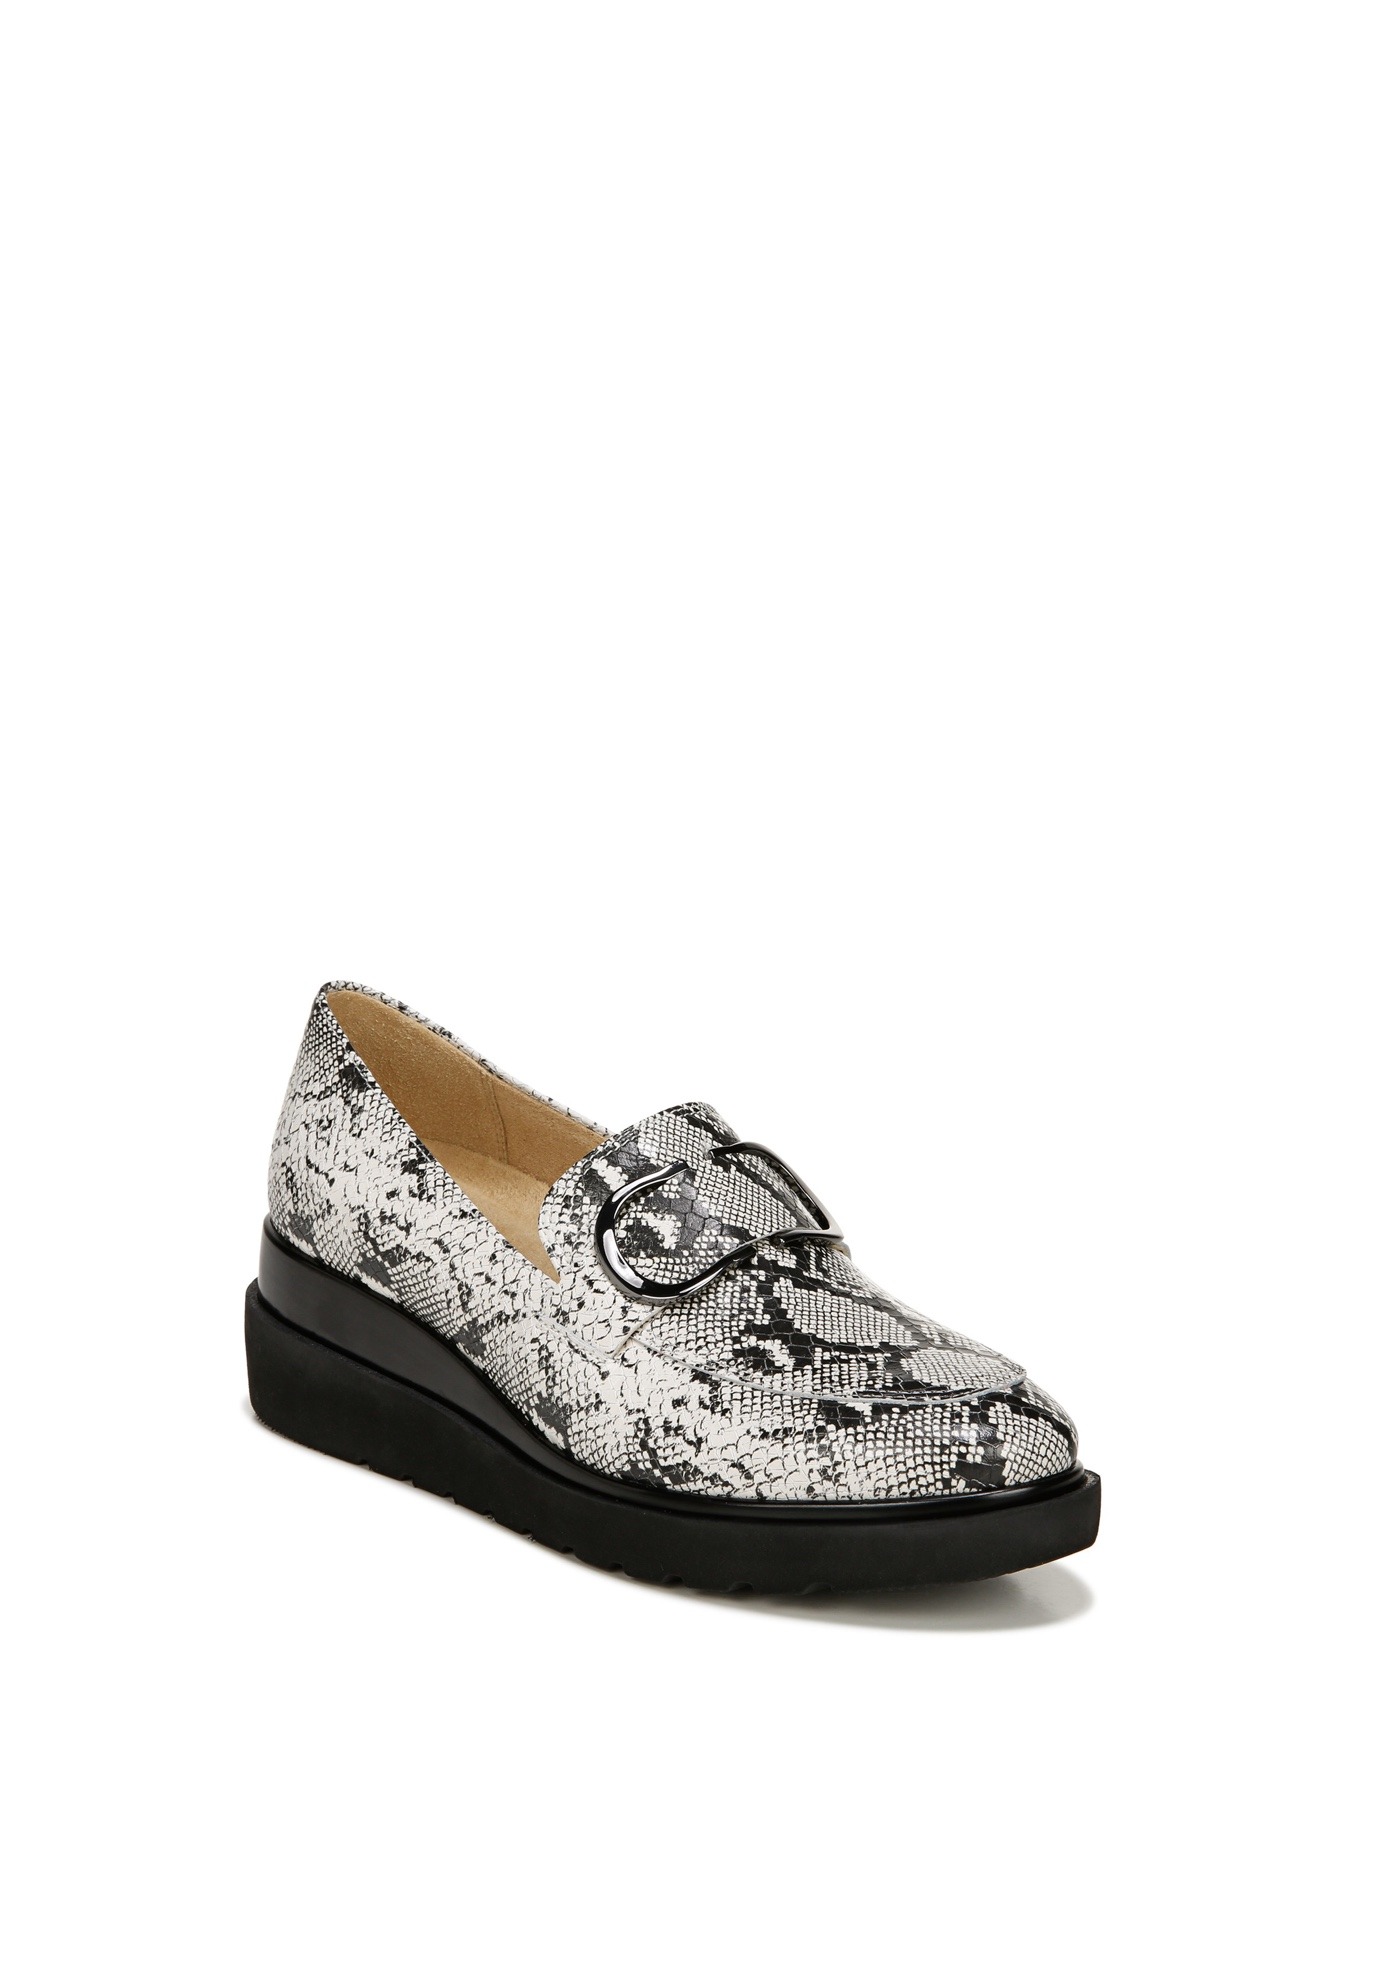 Naturalizer Somerset Loafer,